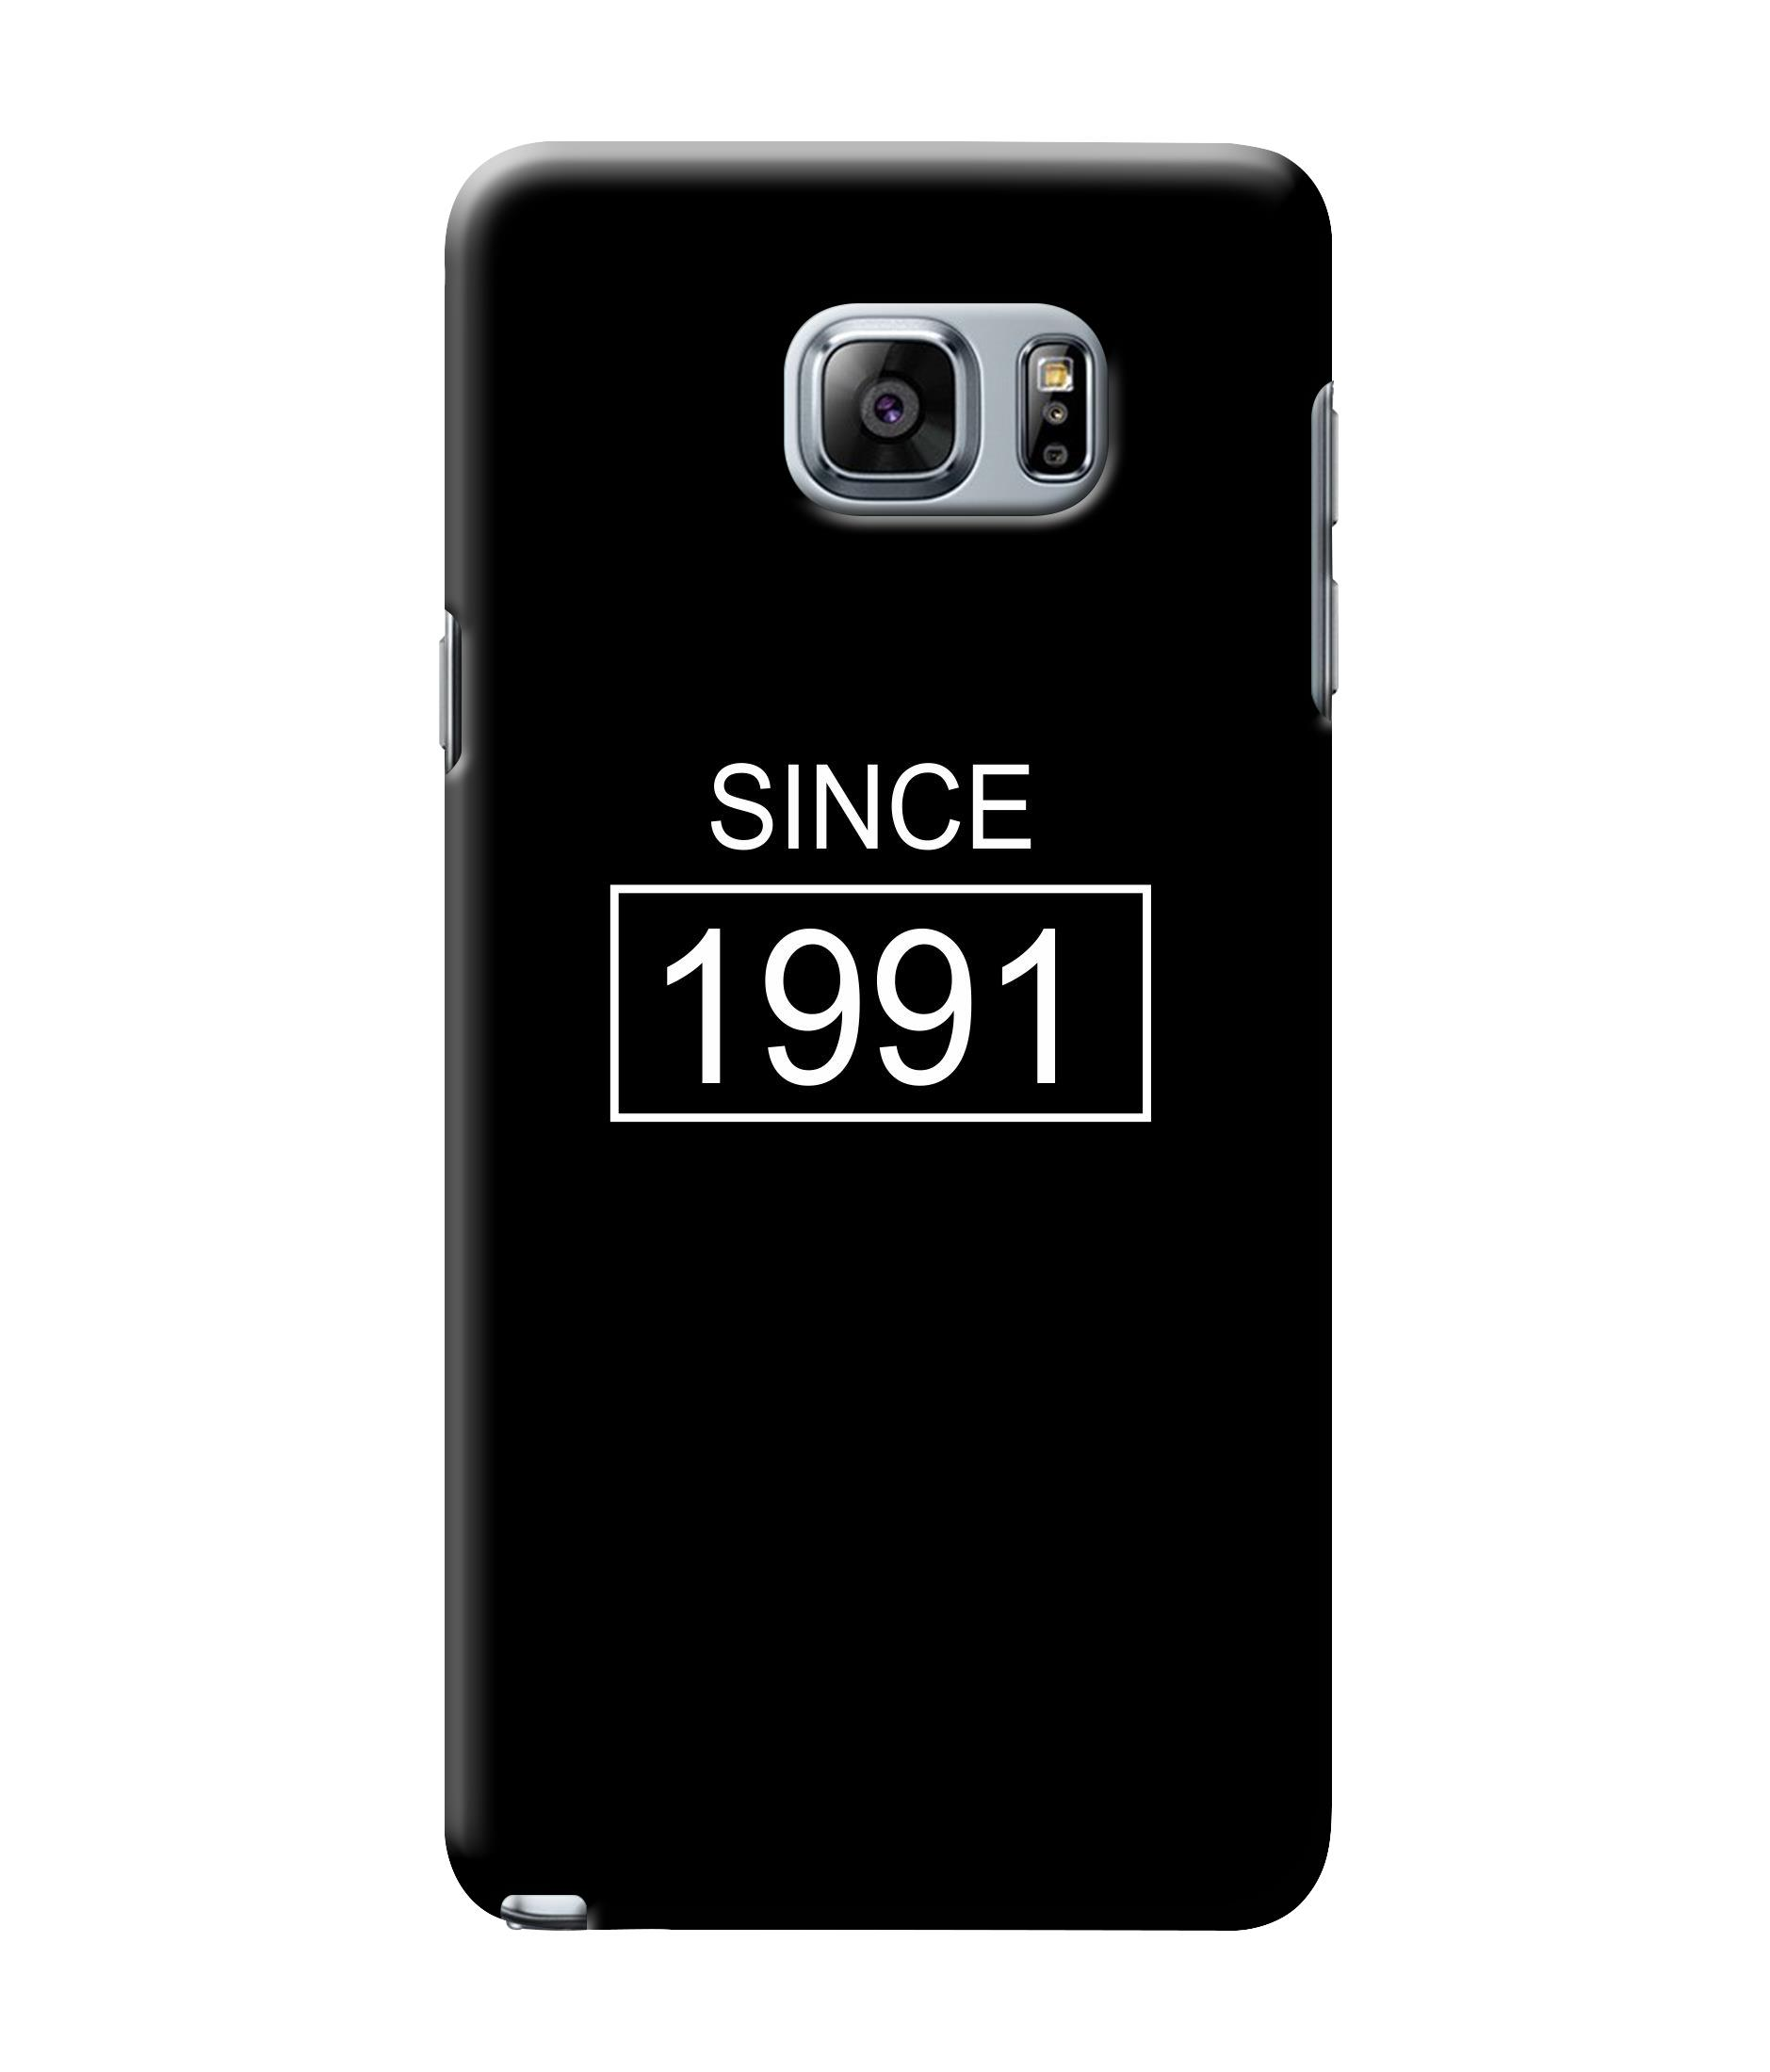 caseophile2 Samsung Galaxy Note 5 Since 1991 Mobile Case